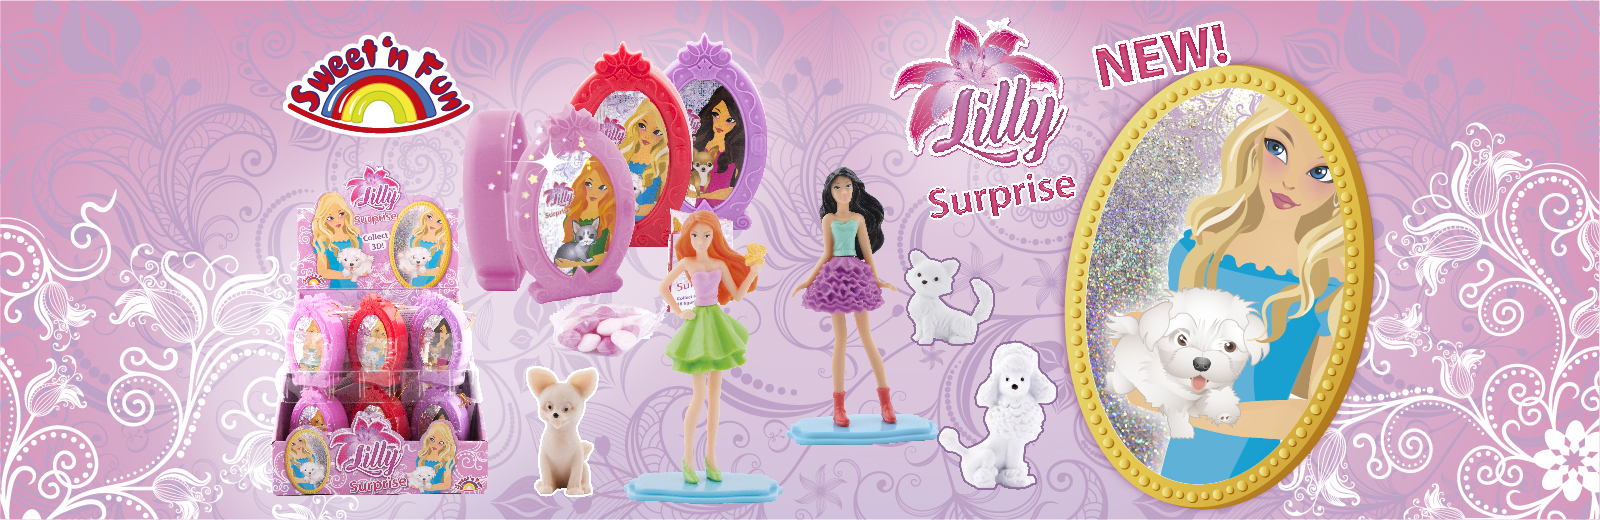 slide /fotky26304/slider/banner-lilly-01.jpg